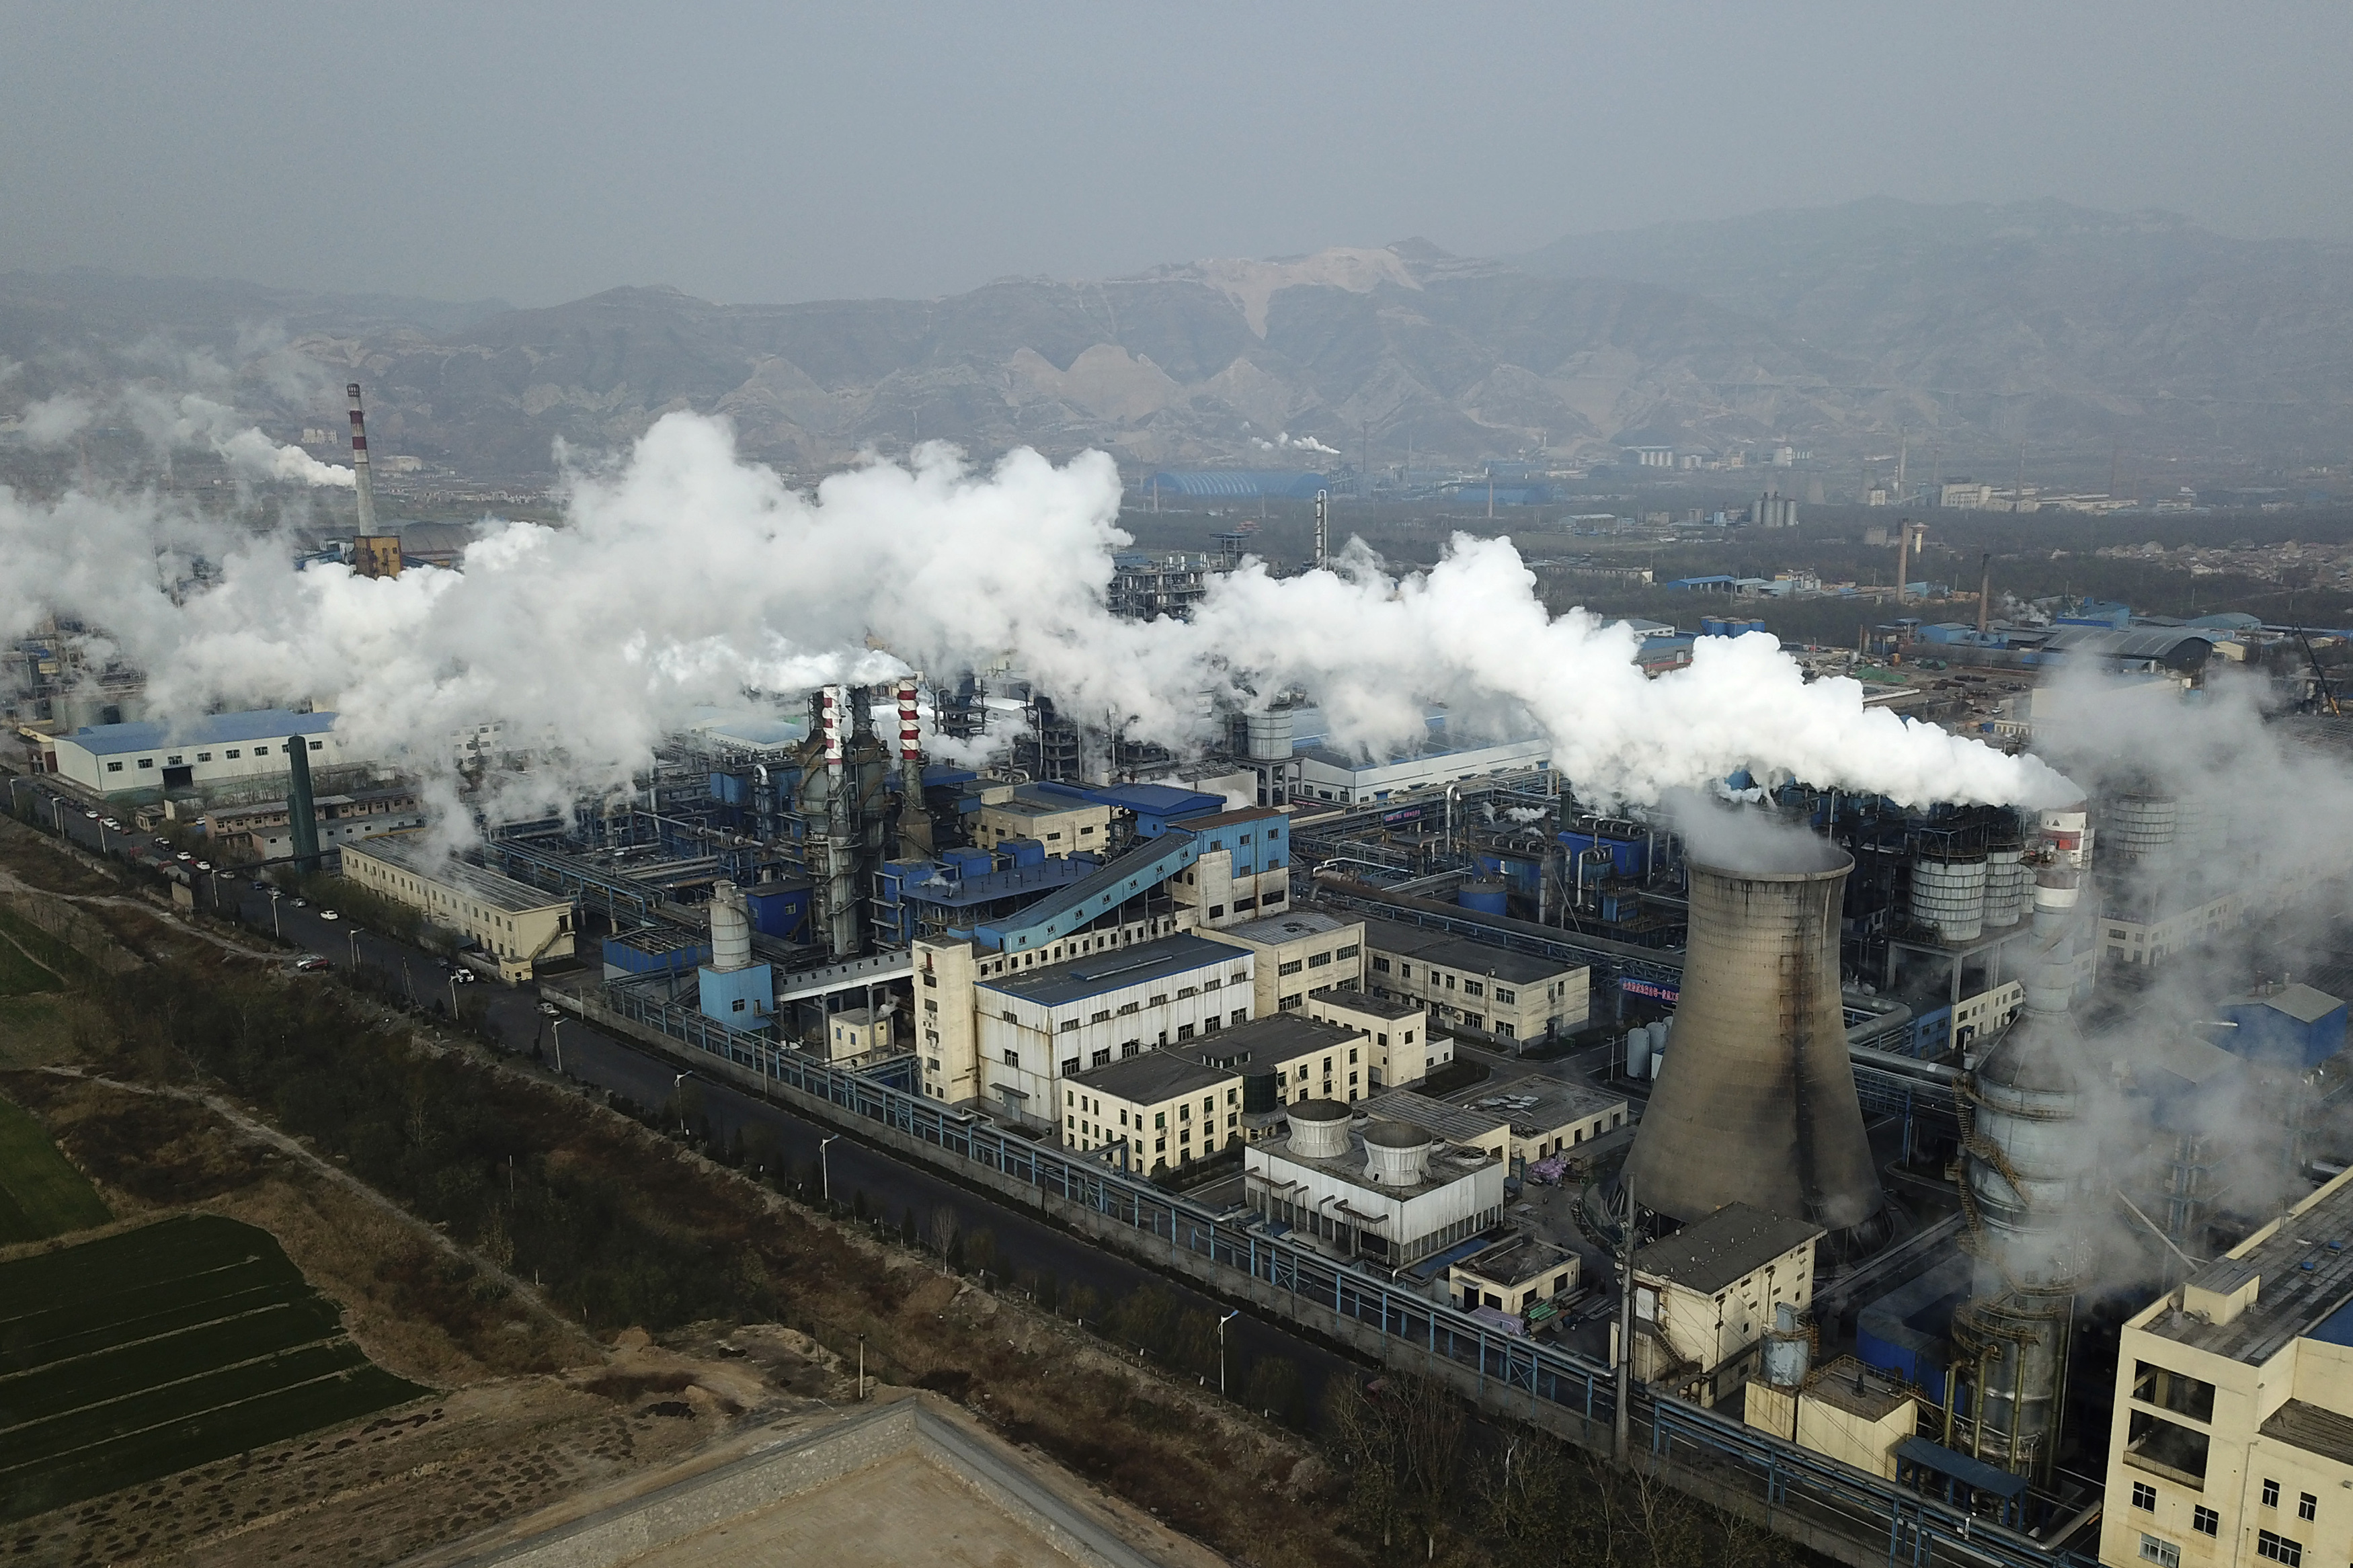 Smoke and steam rise from a coal processing plant that produces carbon black, an ingredient in steel manufacturing, in Hejin in central China's Shanxi Province on Nov. 28, 2019.